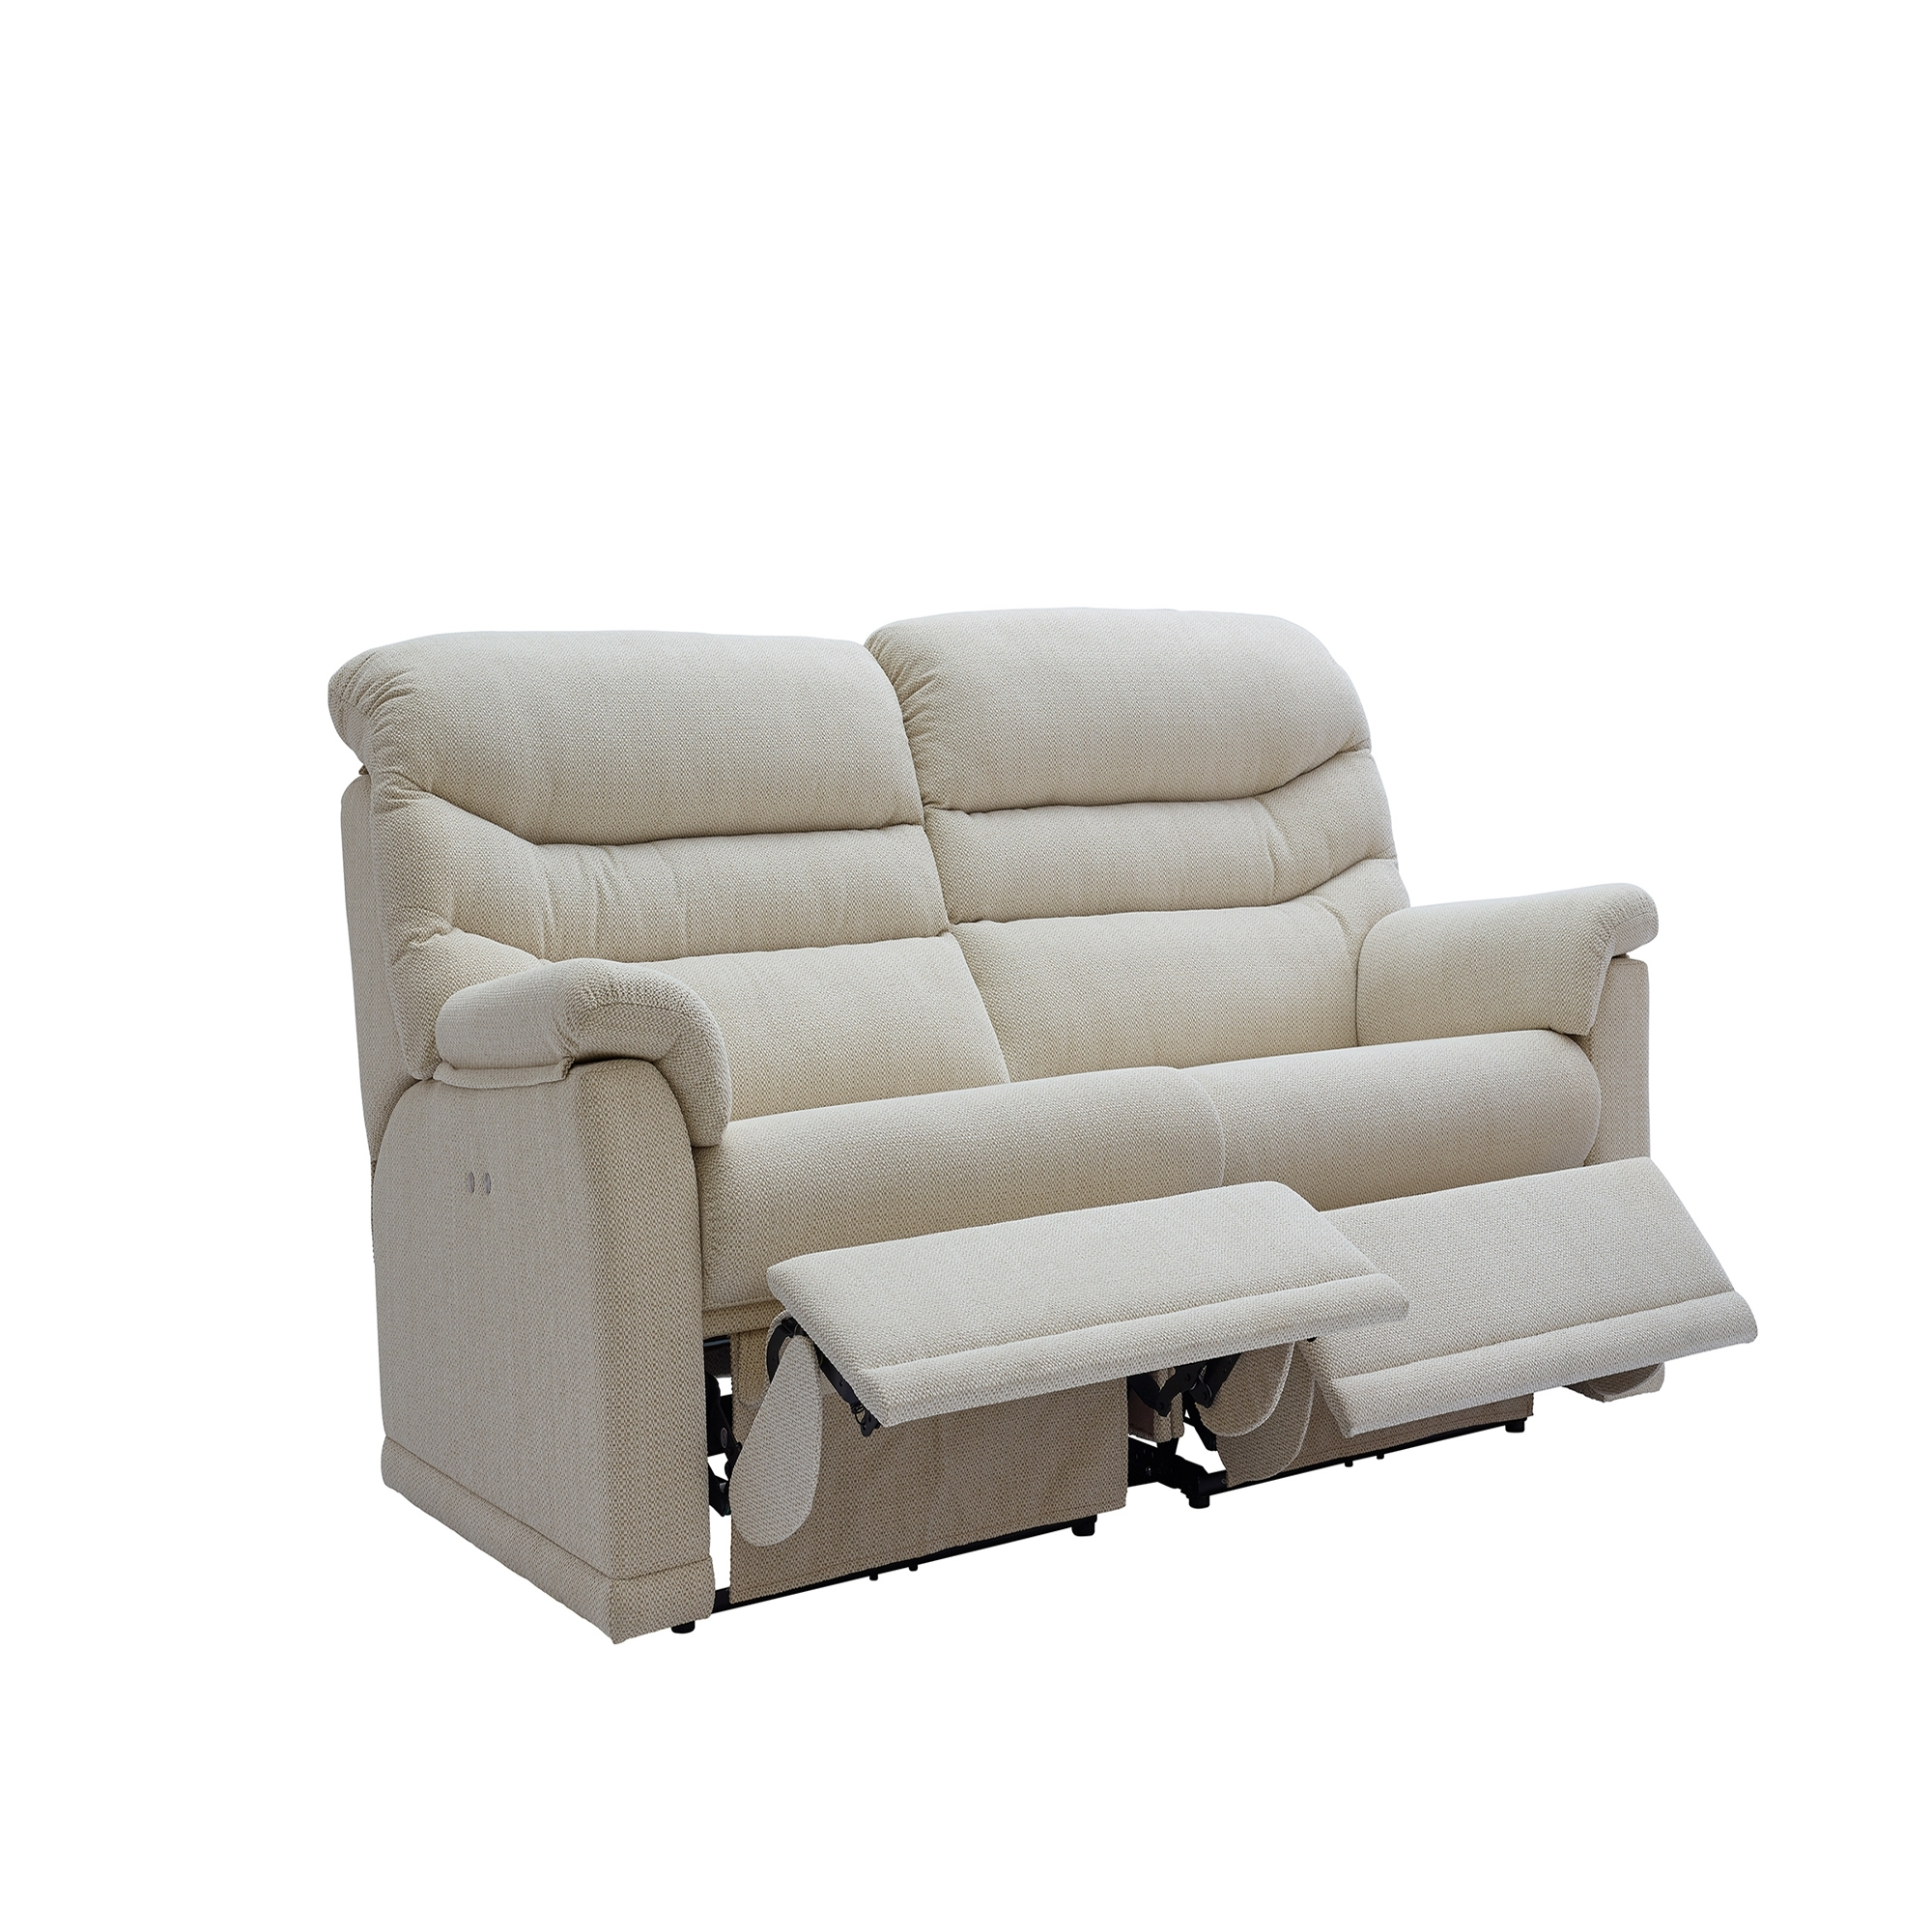 G Plan Malvern 2 Seater Double Power Recliner Sofa All